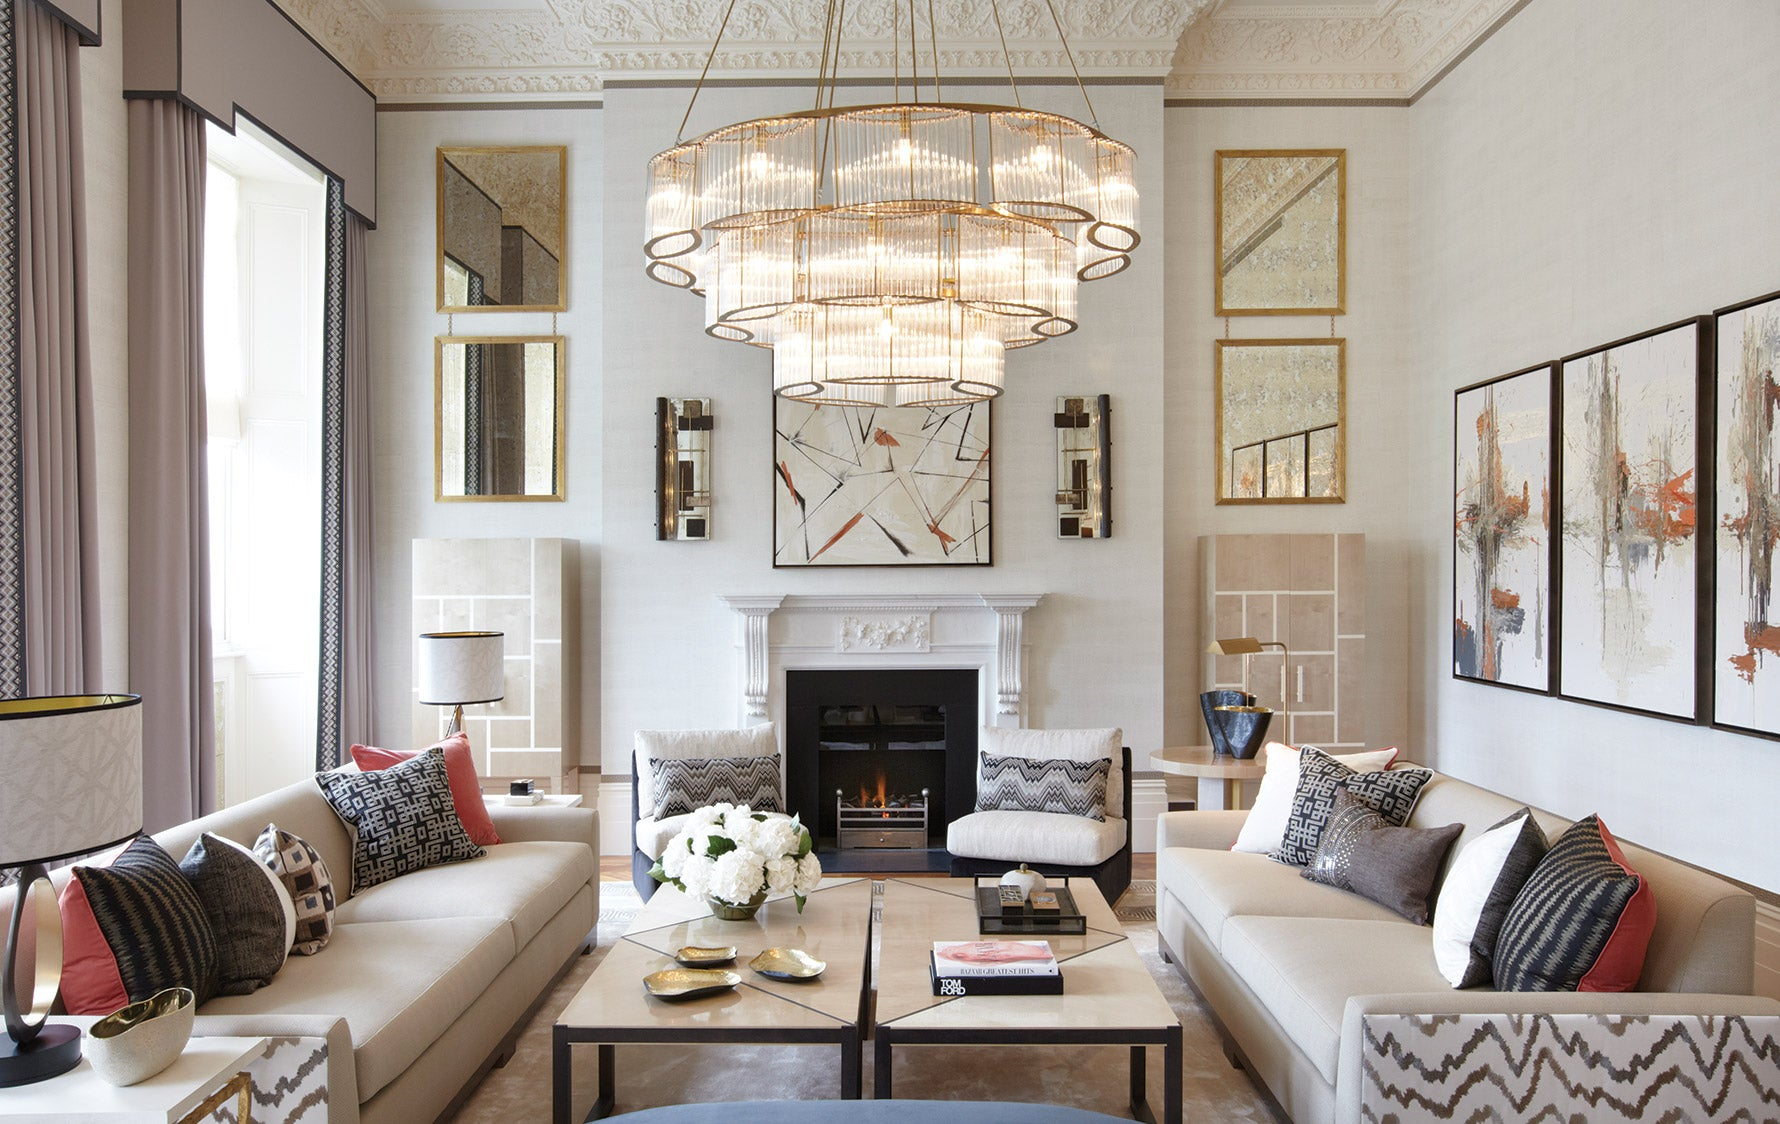 How To Get Your Room Proportions Right In Interior Design - Helen Green Design - LuxDeco Style Guide